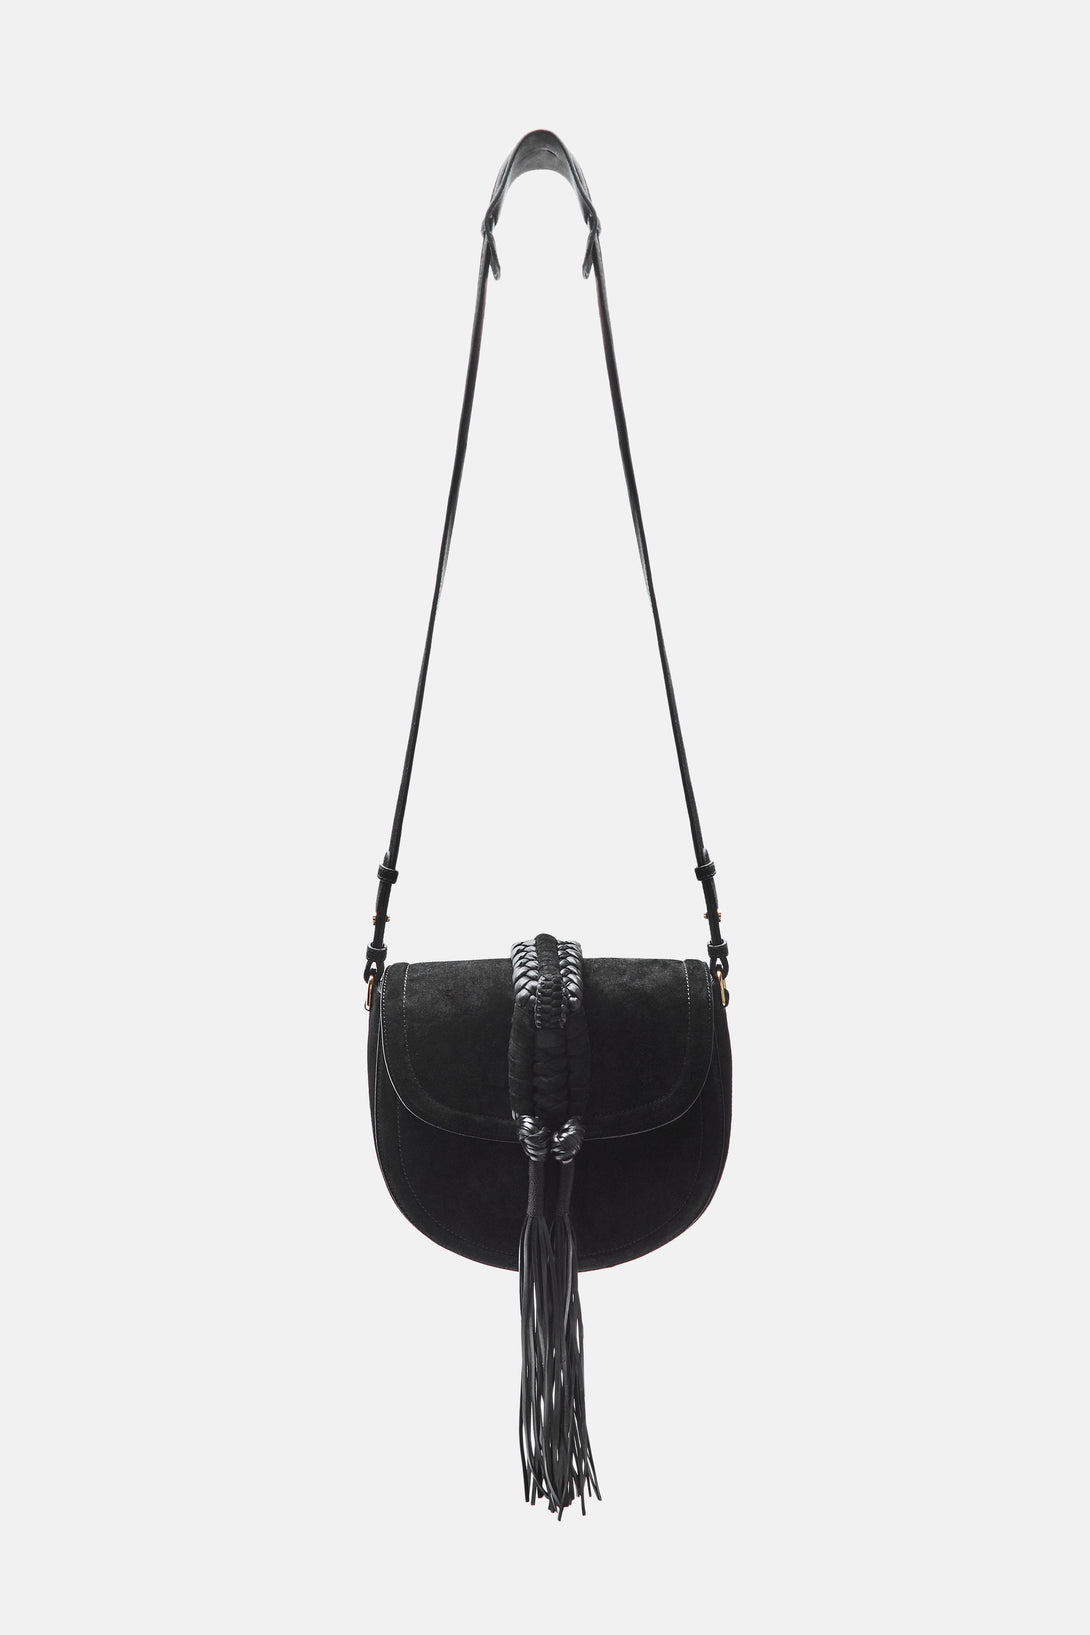 Ghianda Knot Saddle Bag Small - Black